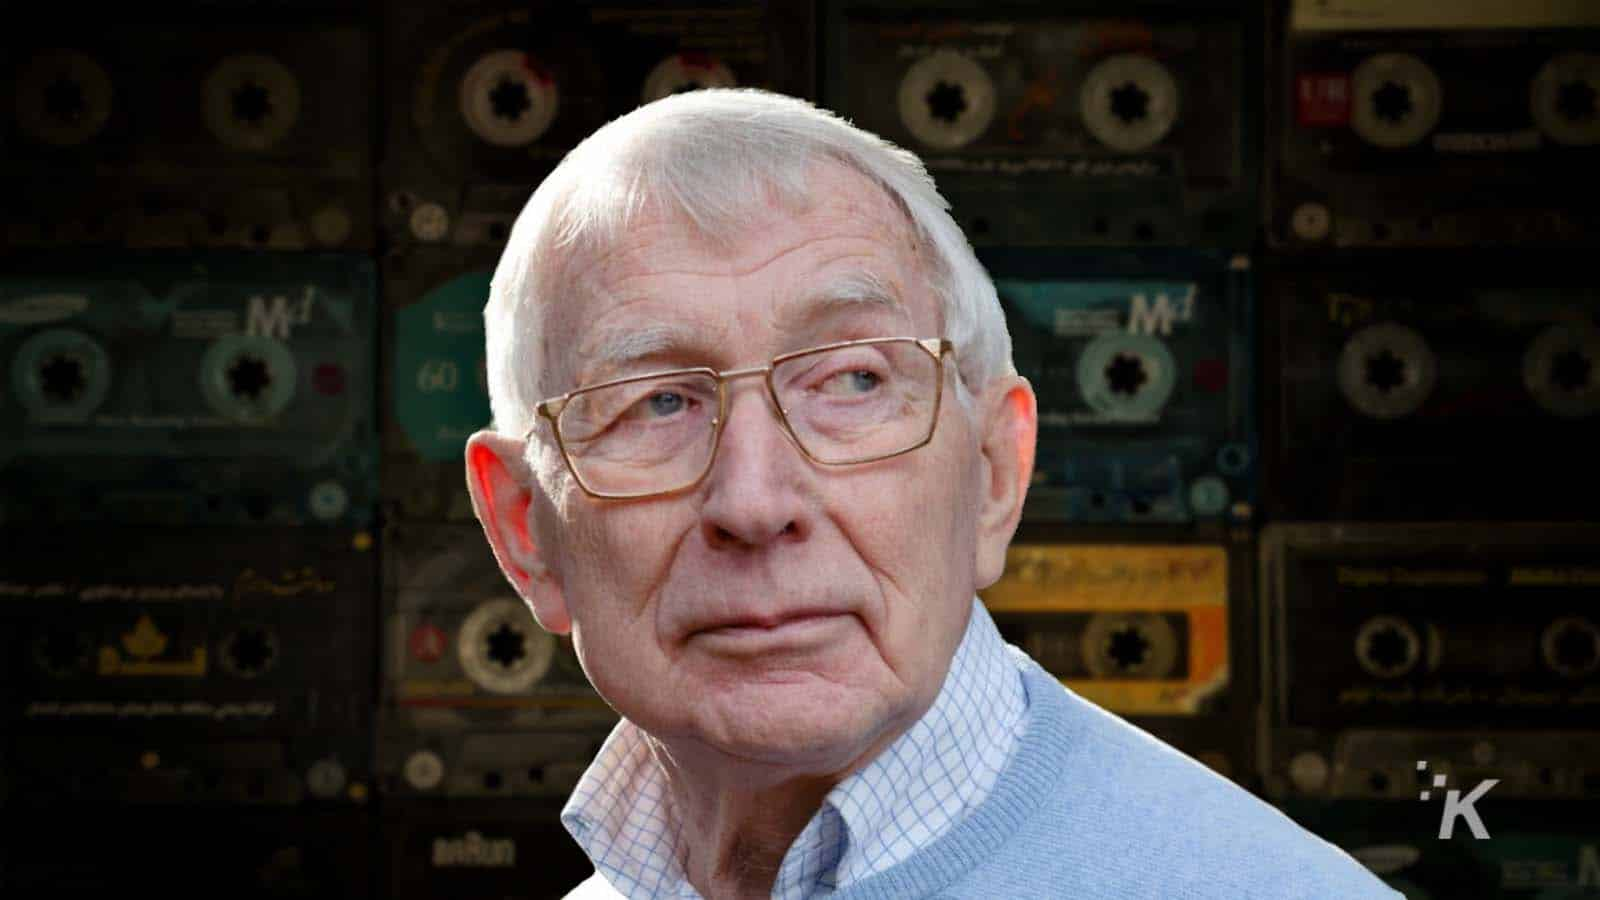 lou ottens the inventor of cassette tapes